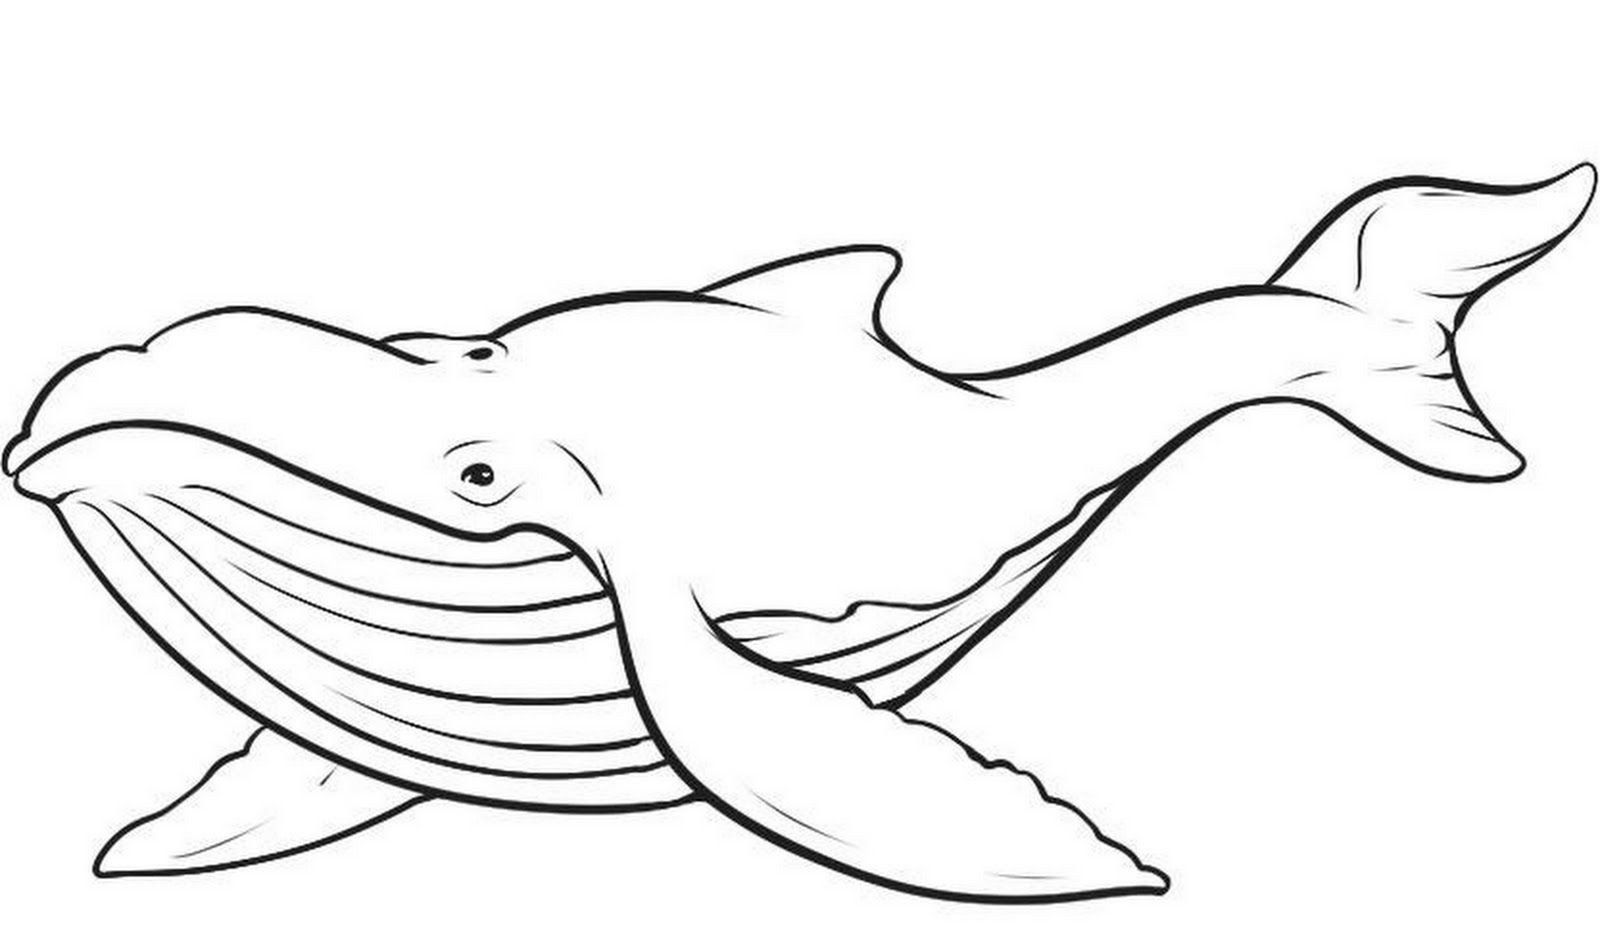 Jonah And The Whale Coloring Page Unique Whale Outline Black White